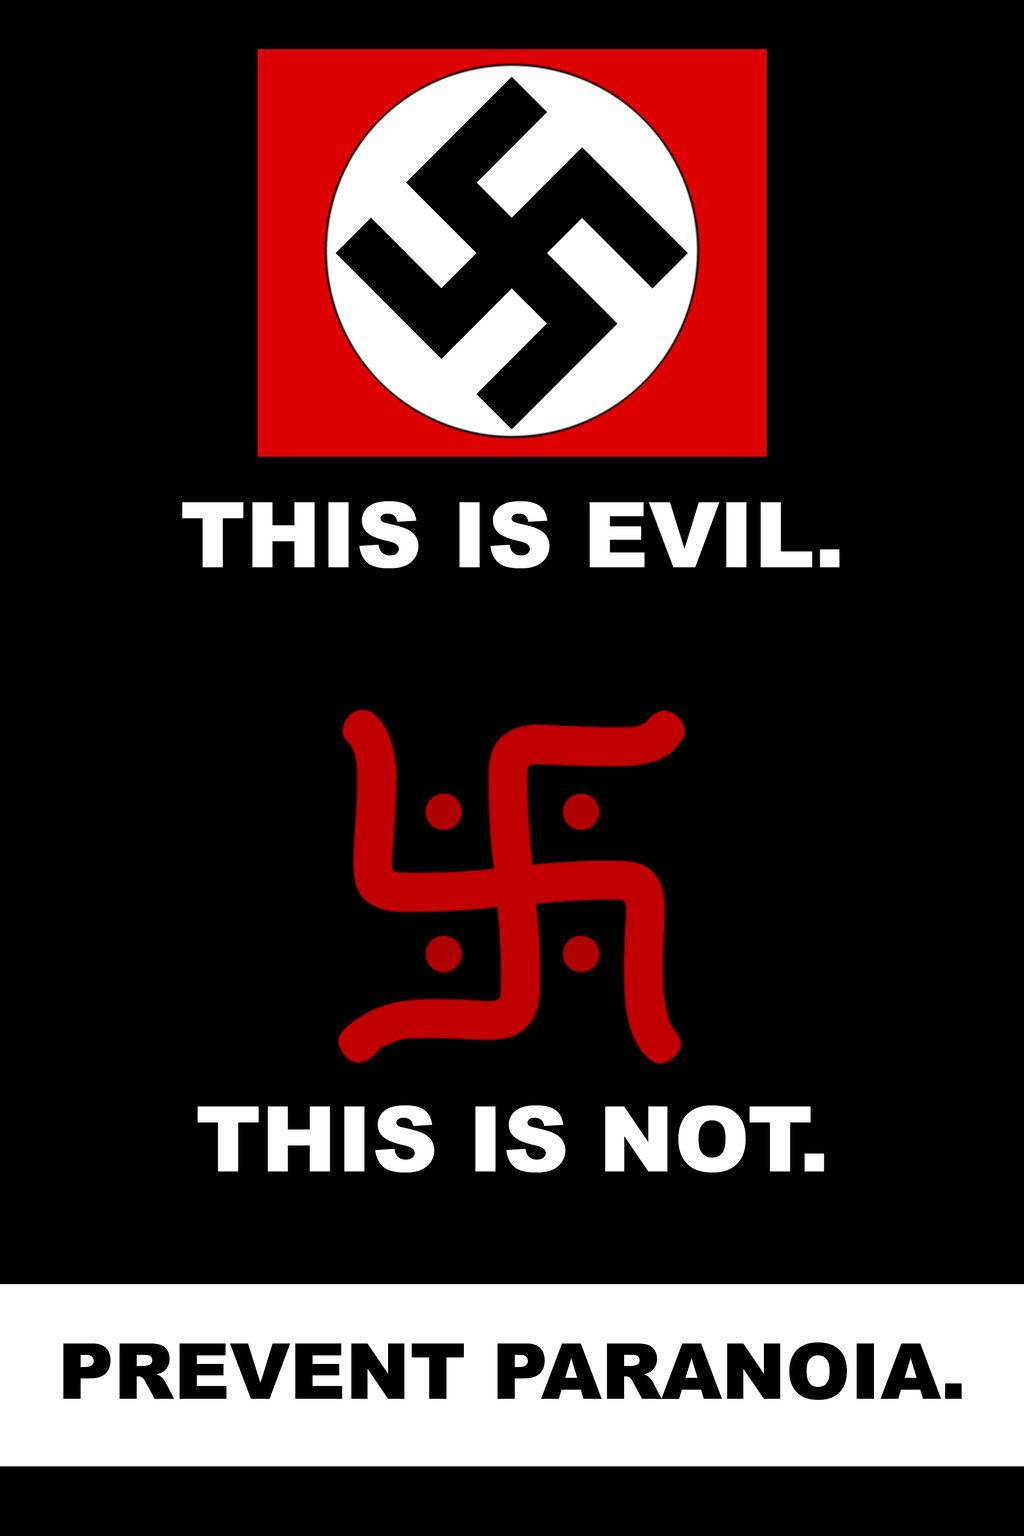 The swastika was also a rune used by the scandinavian people and the hindu swastika cross meaning luck originated from india hitler stole it and used it differently on his end there is a huge difference biocorpaavc